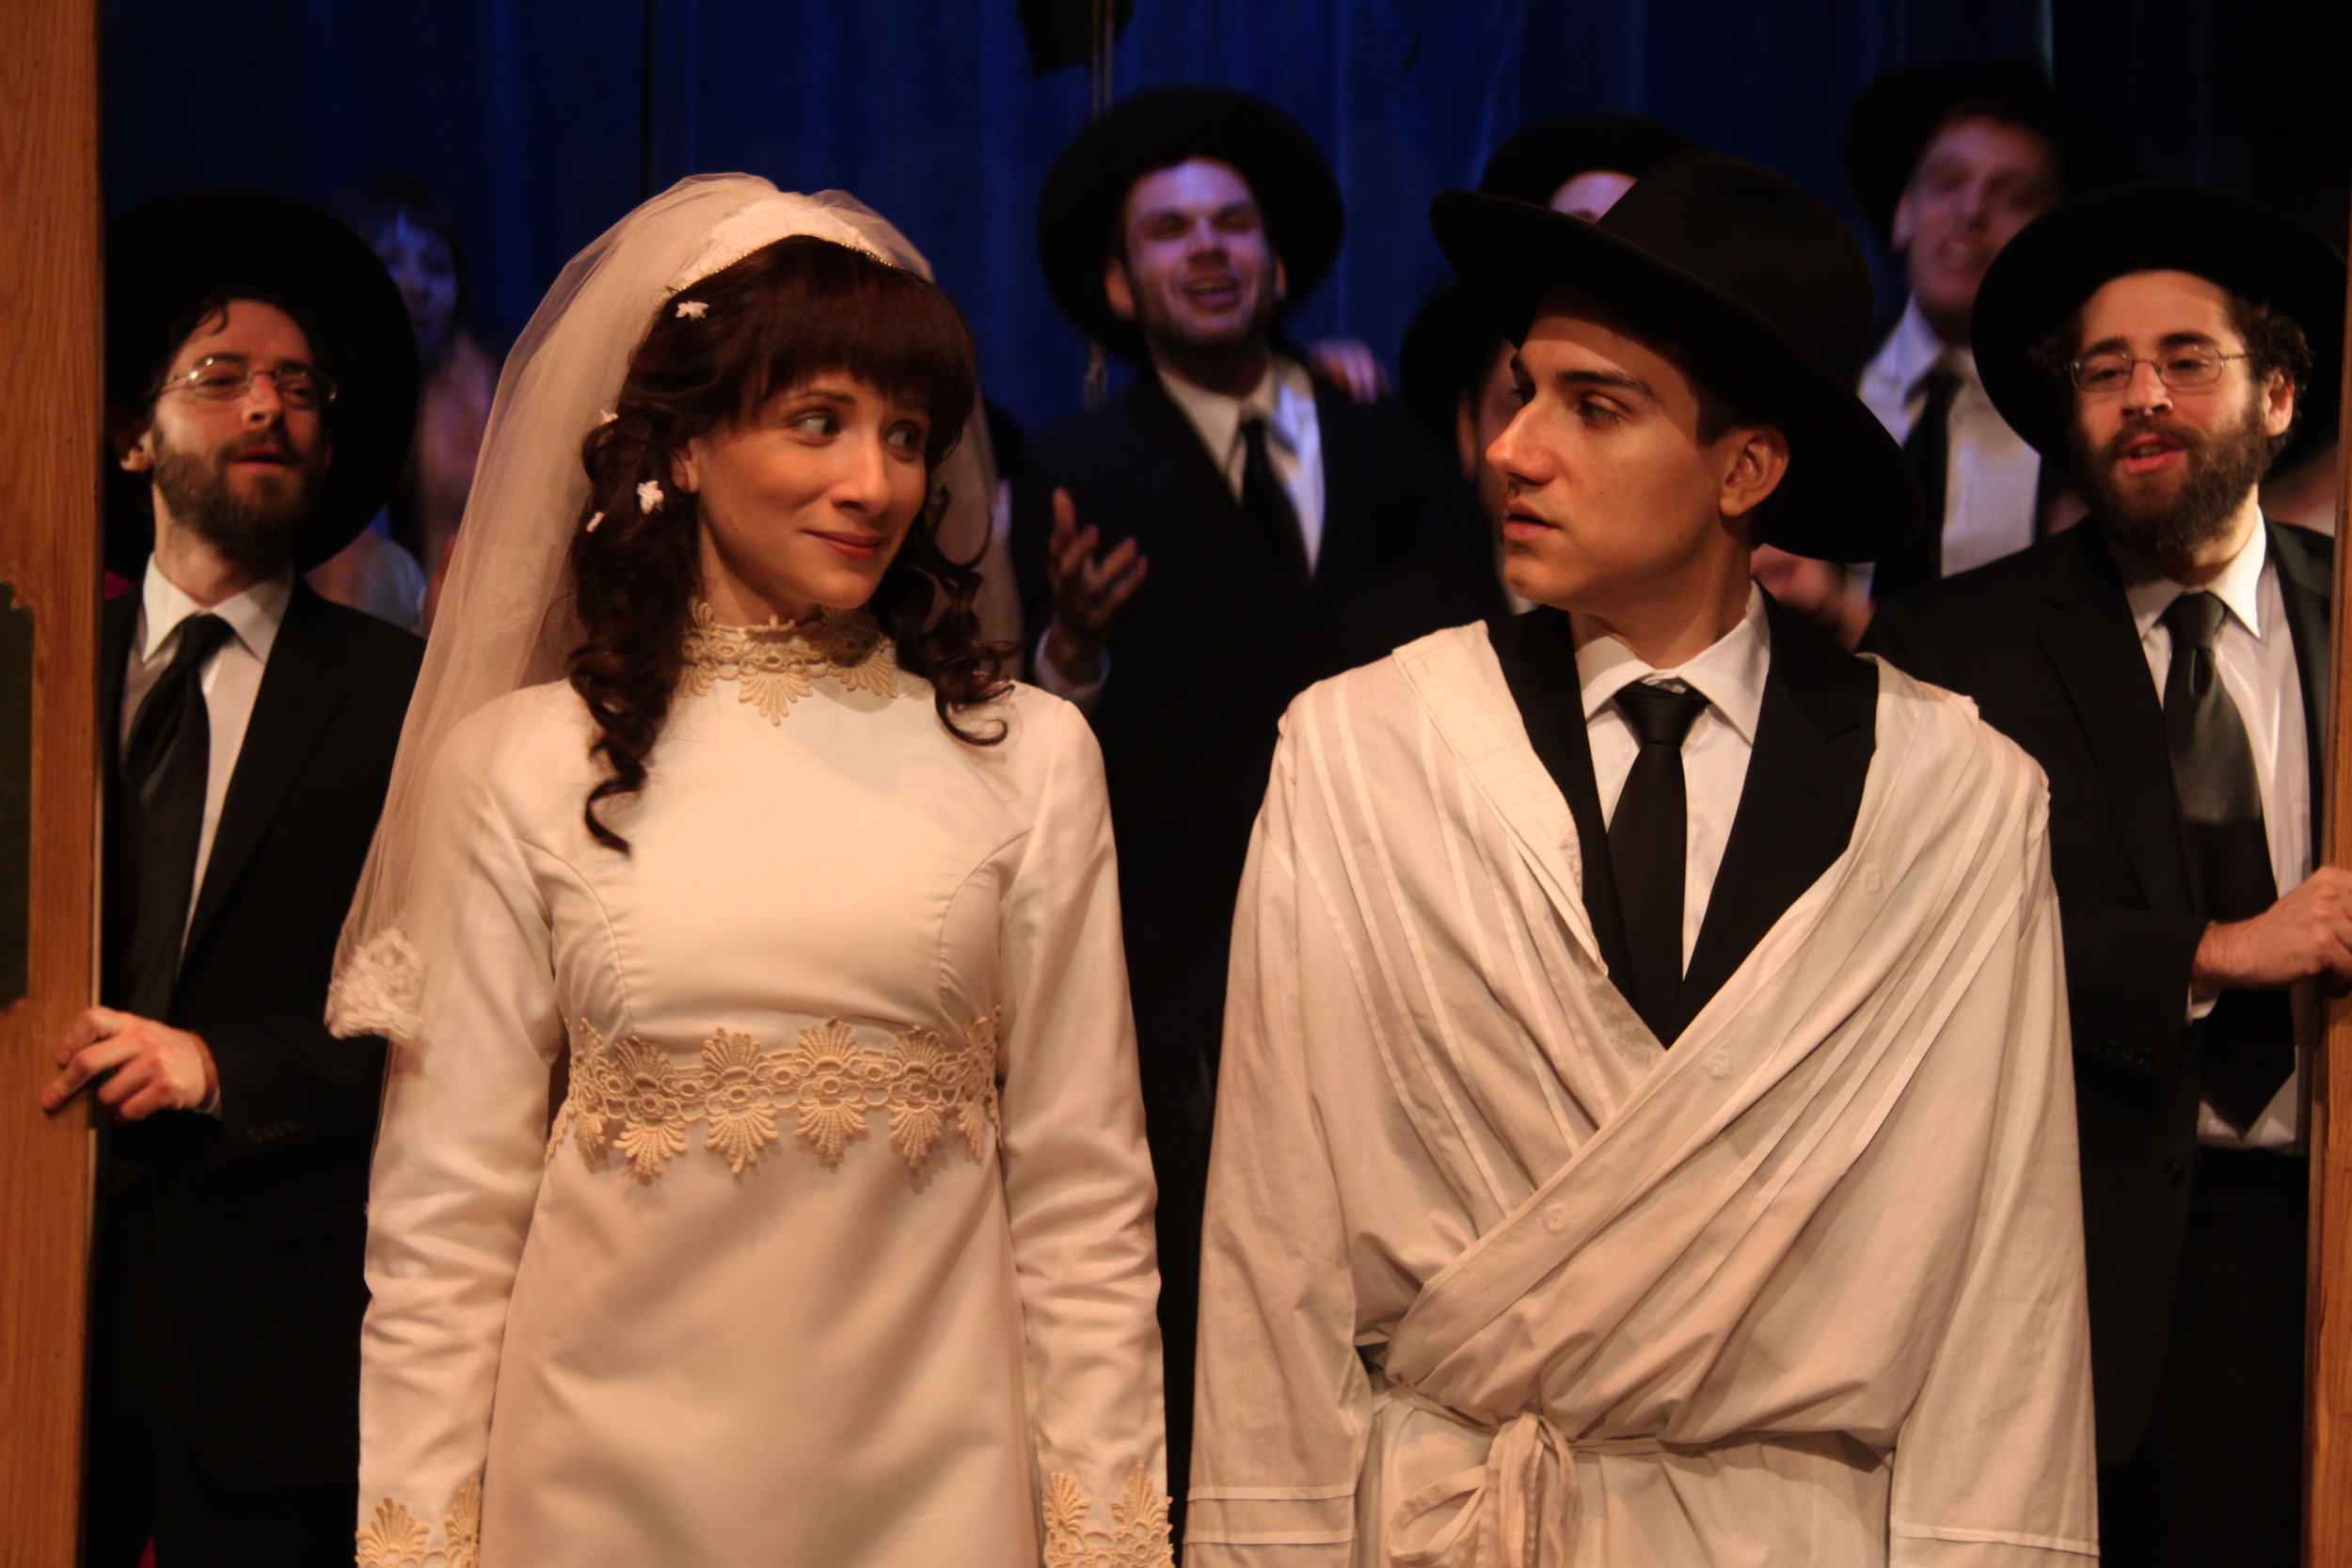 Julie Tepperman as Rachel and Aaron Willis as Chaim with members of the Cast in YICHUD (Seclusion)